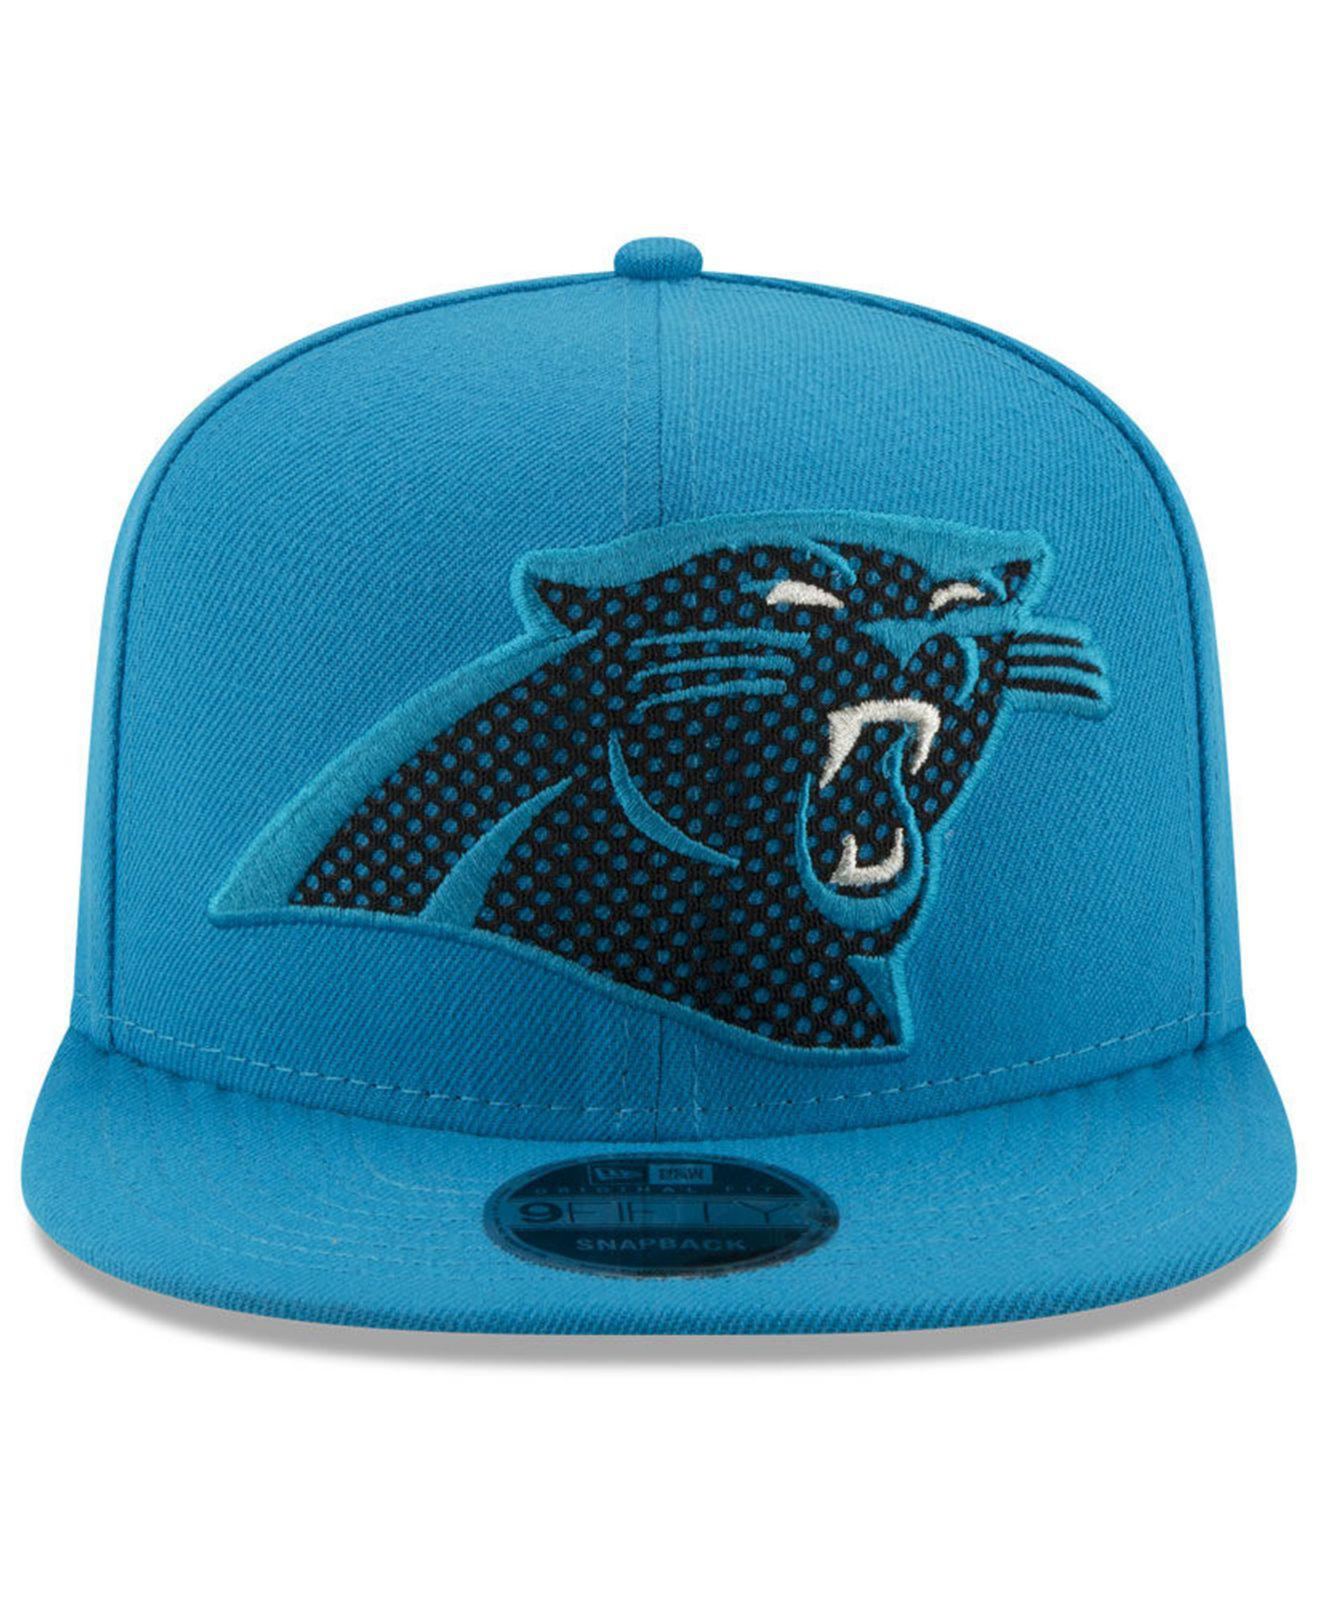 Lyst - Ktz Carolina Panthers Meshed Mix 9fifty Snapback Cap in Blue for Men e0259818db51